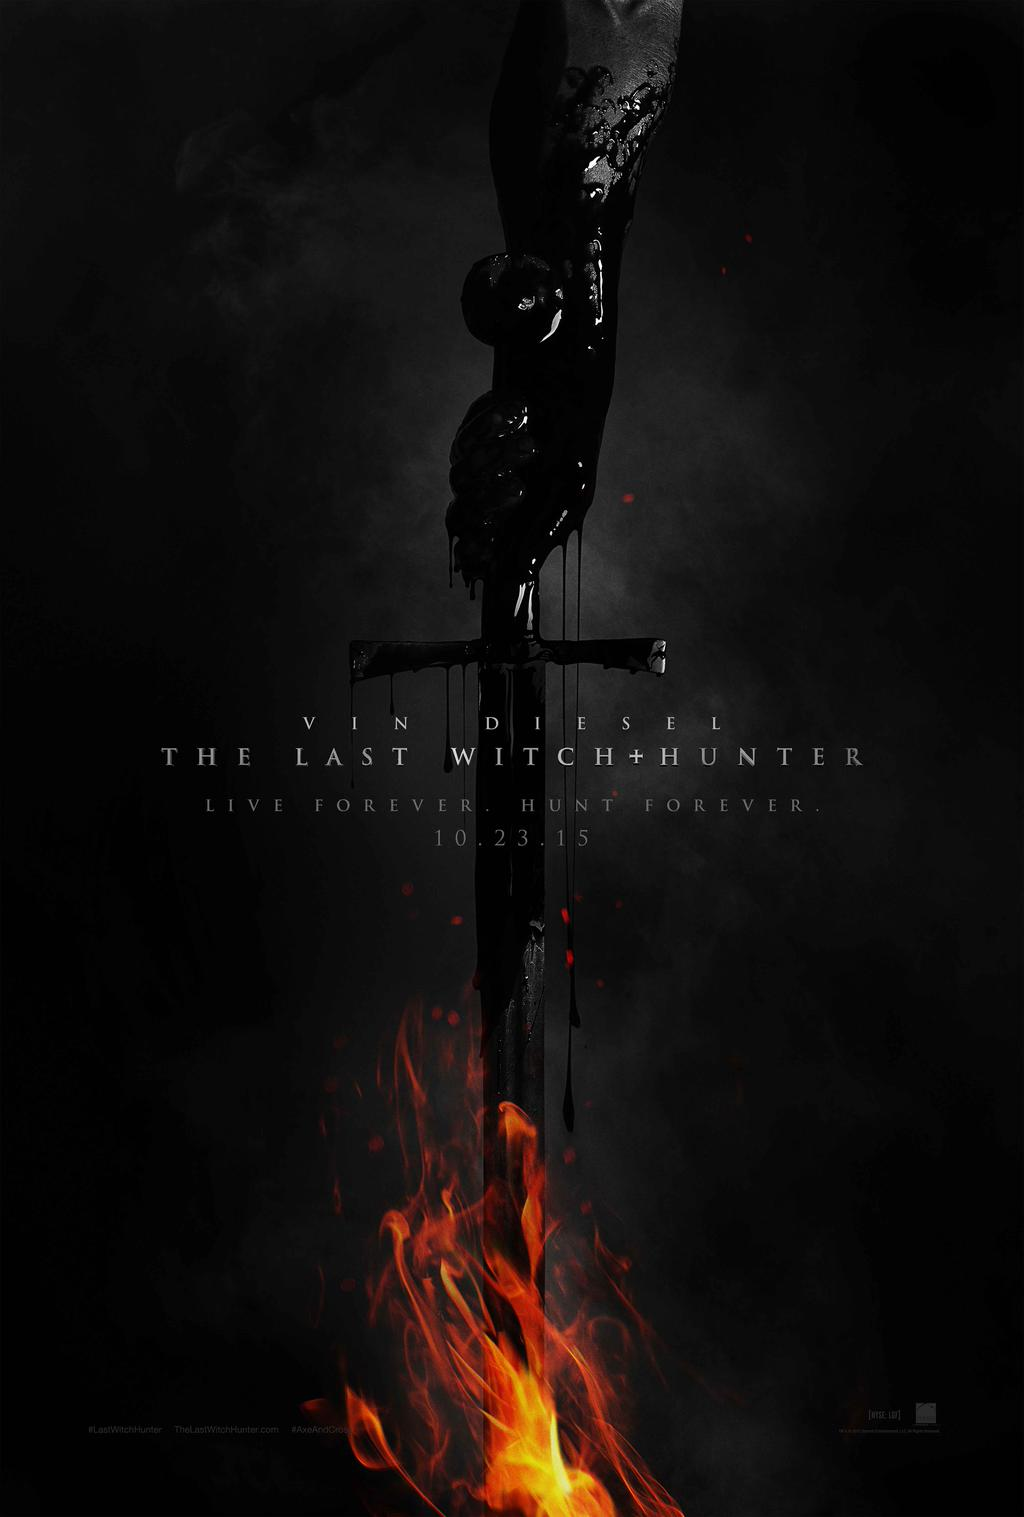 http://bloody-disgusting.com/videos/3342350/trailer-last-witch-hunter-vin-diesel/